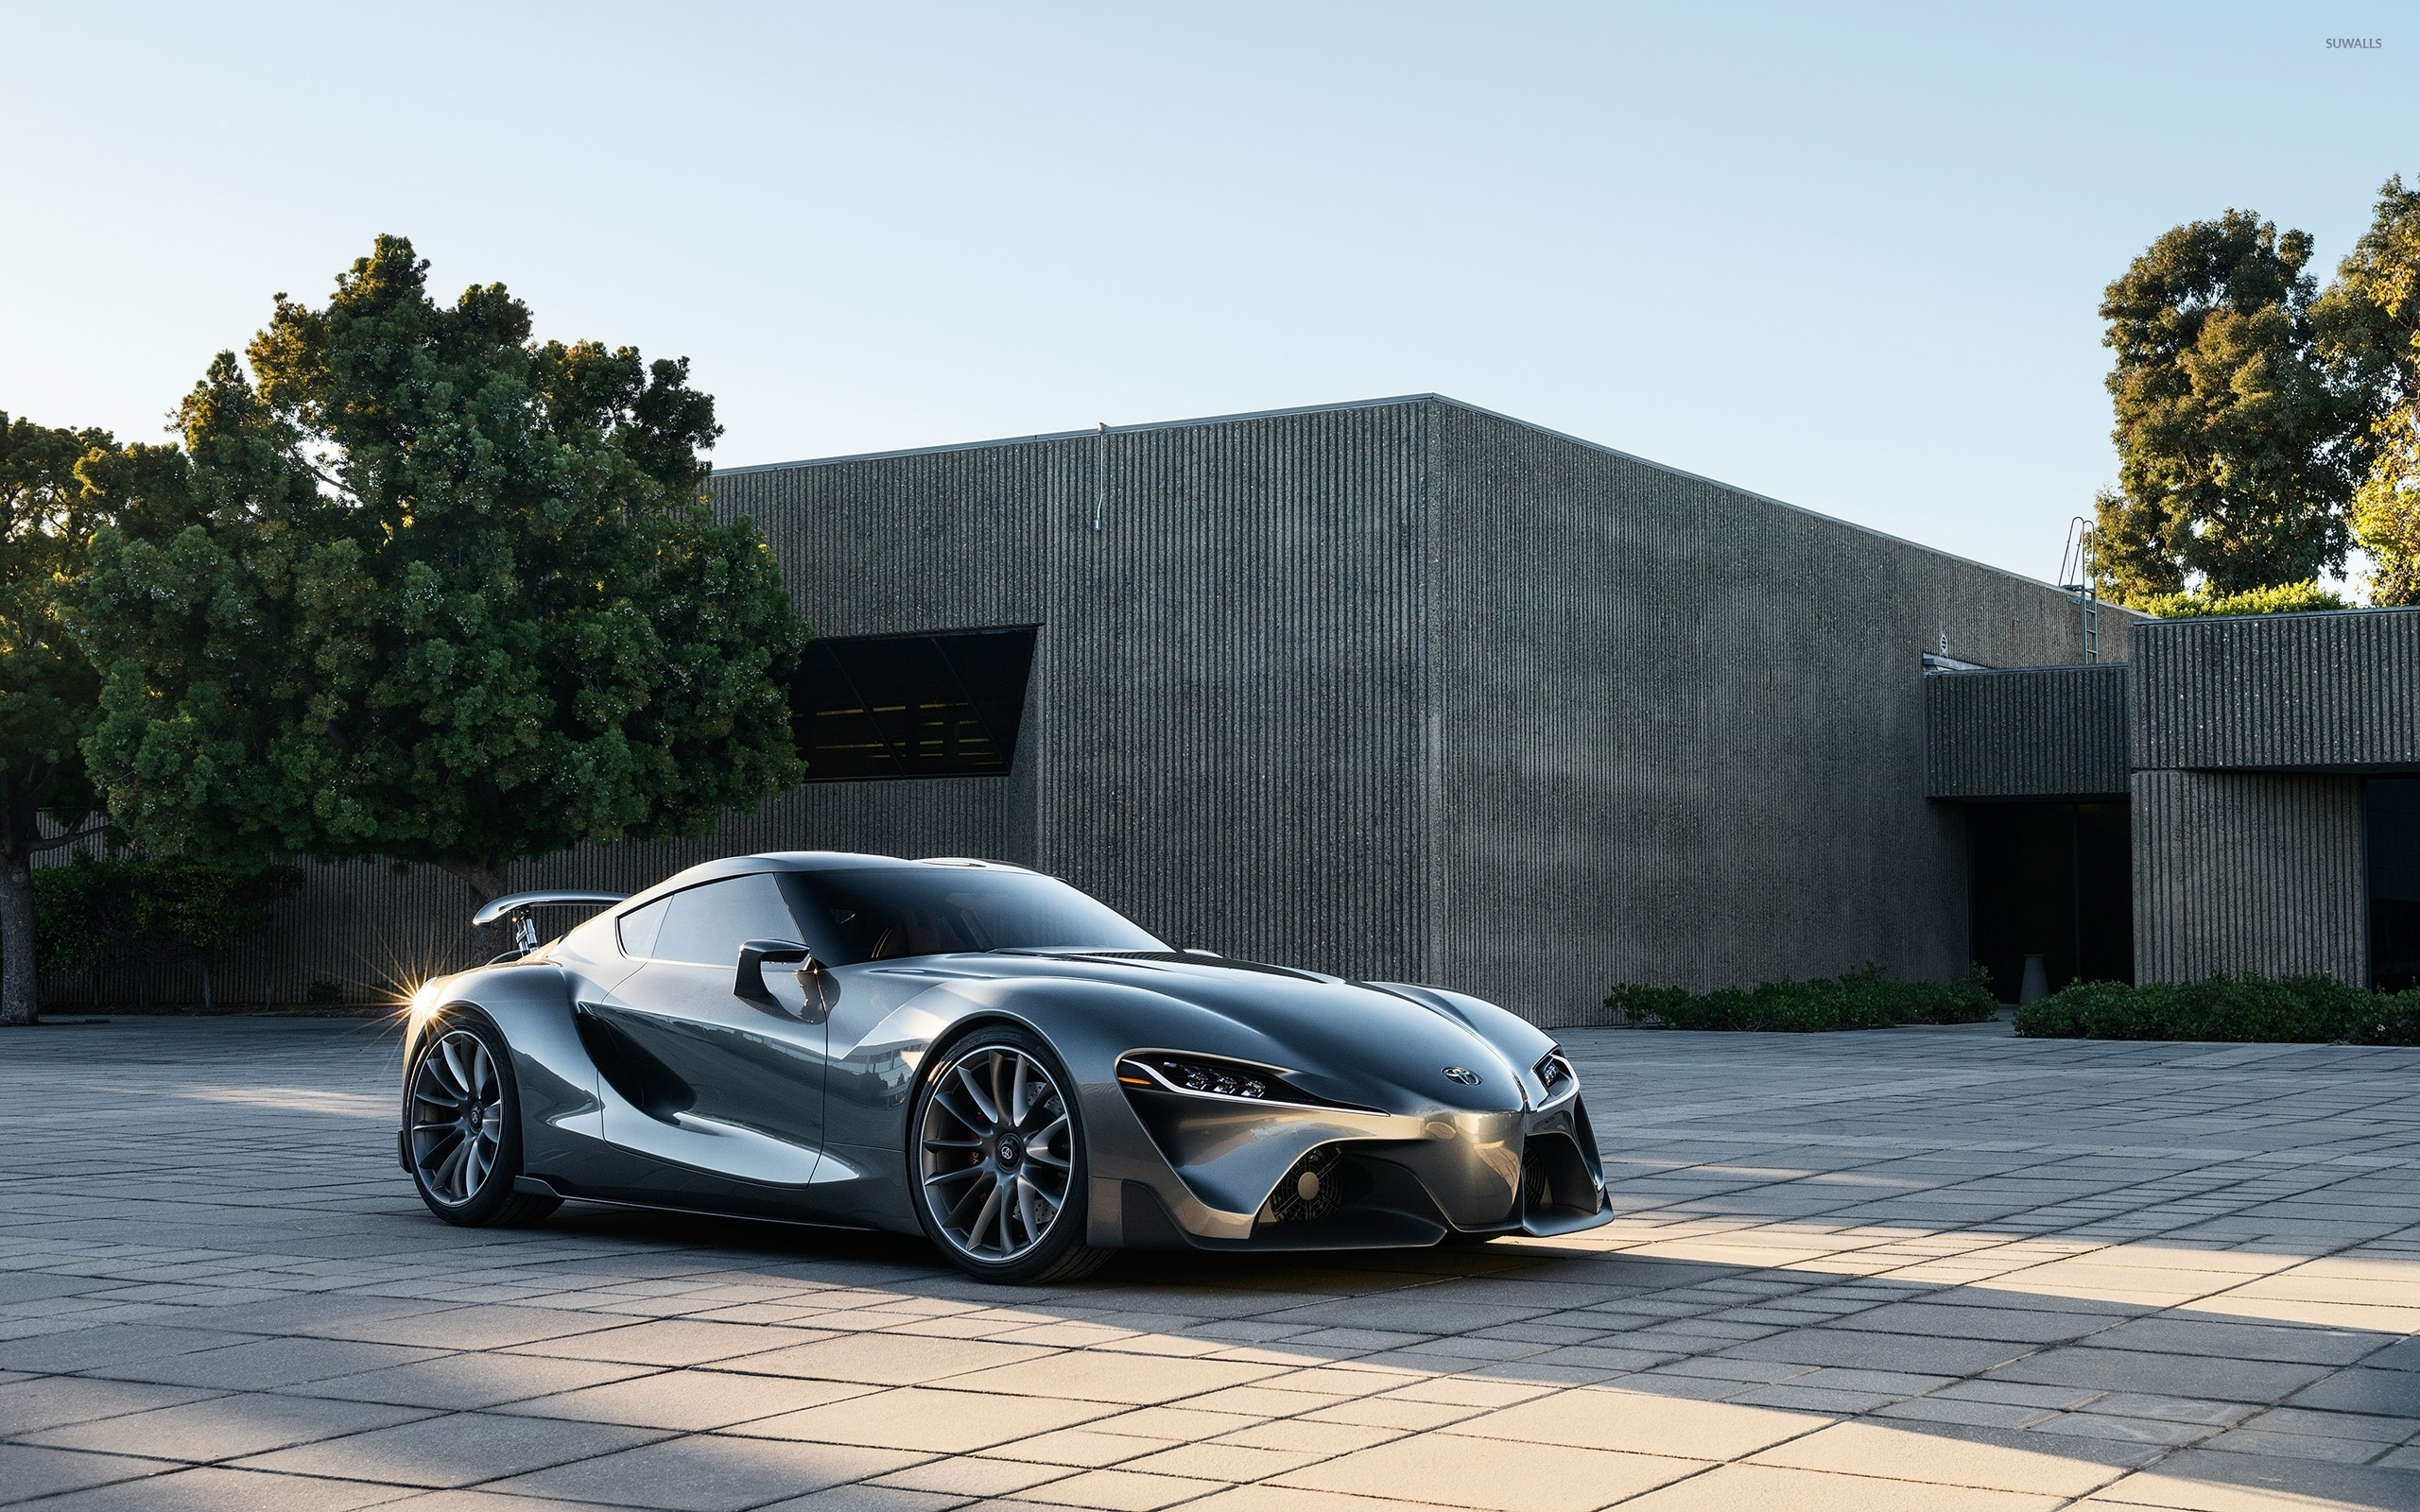 Beau Toyota FT 1 Concept [2] Wallpaper